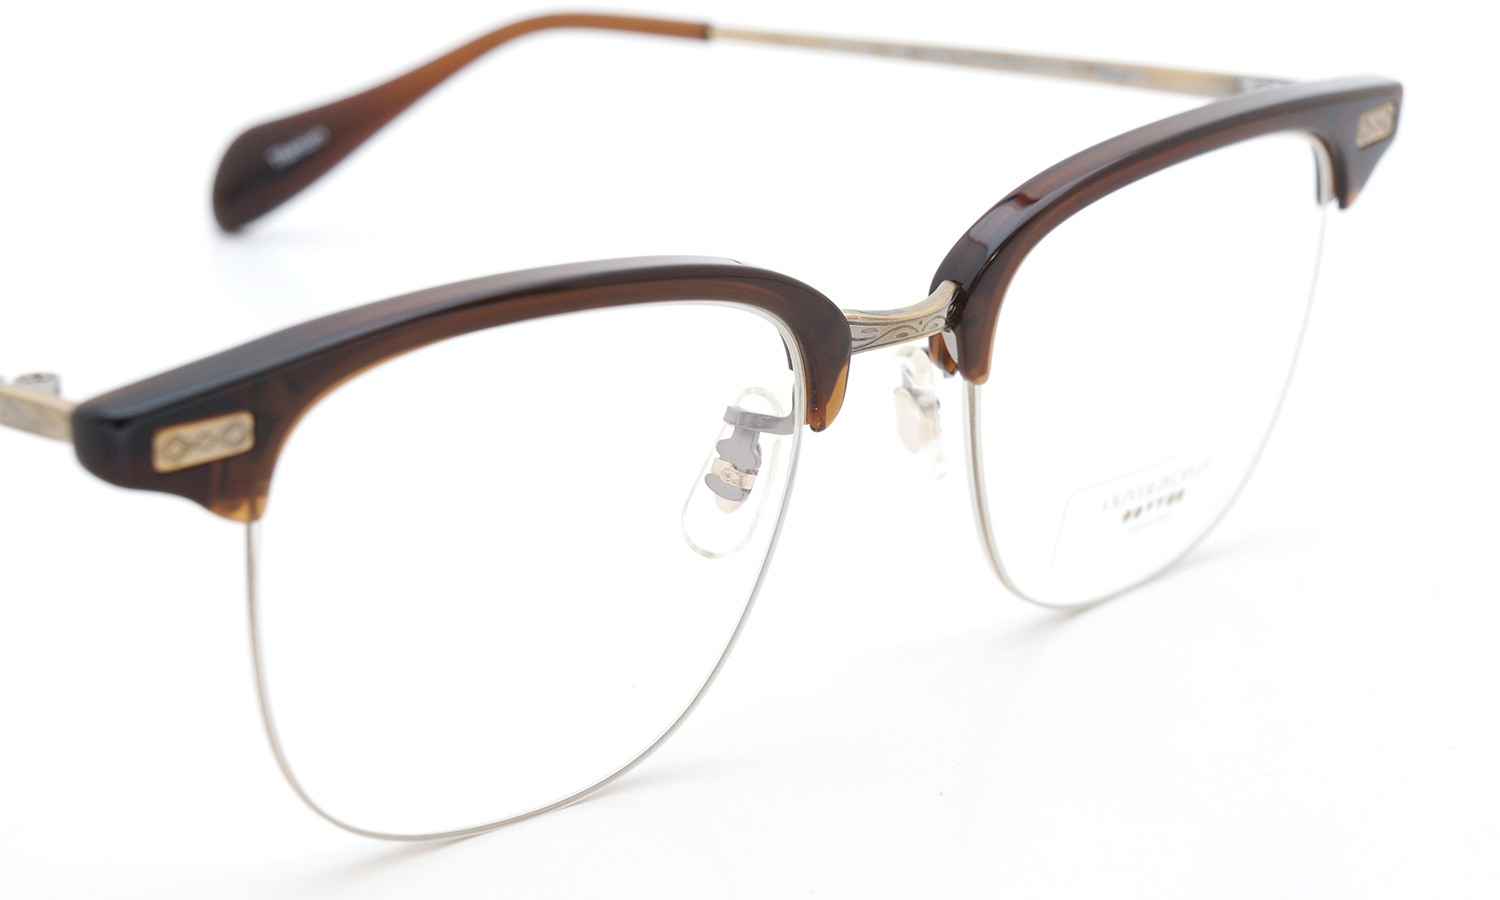 OLIVER PEOPLES オリバーピープルズ THE EXECUTIVE SERIES メガネ EXECUTIVE1 ESP/AG